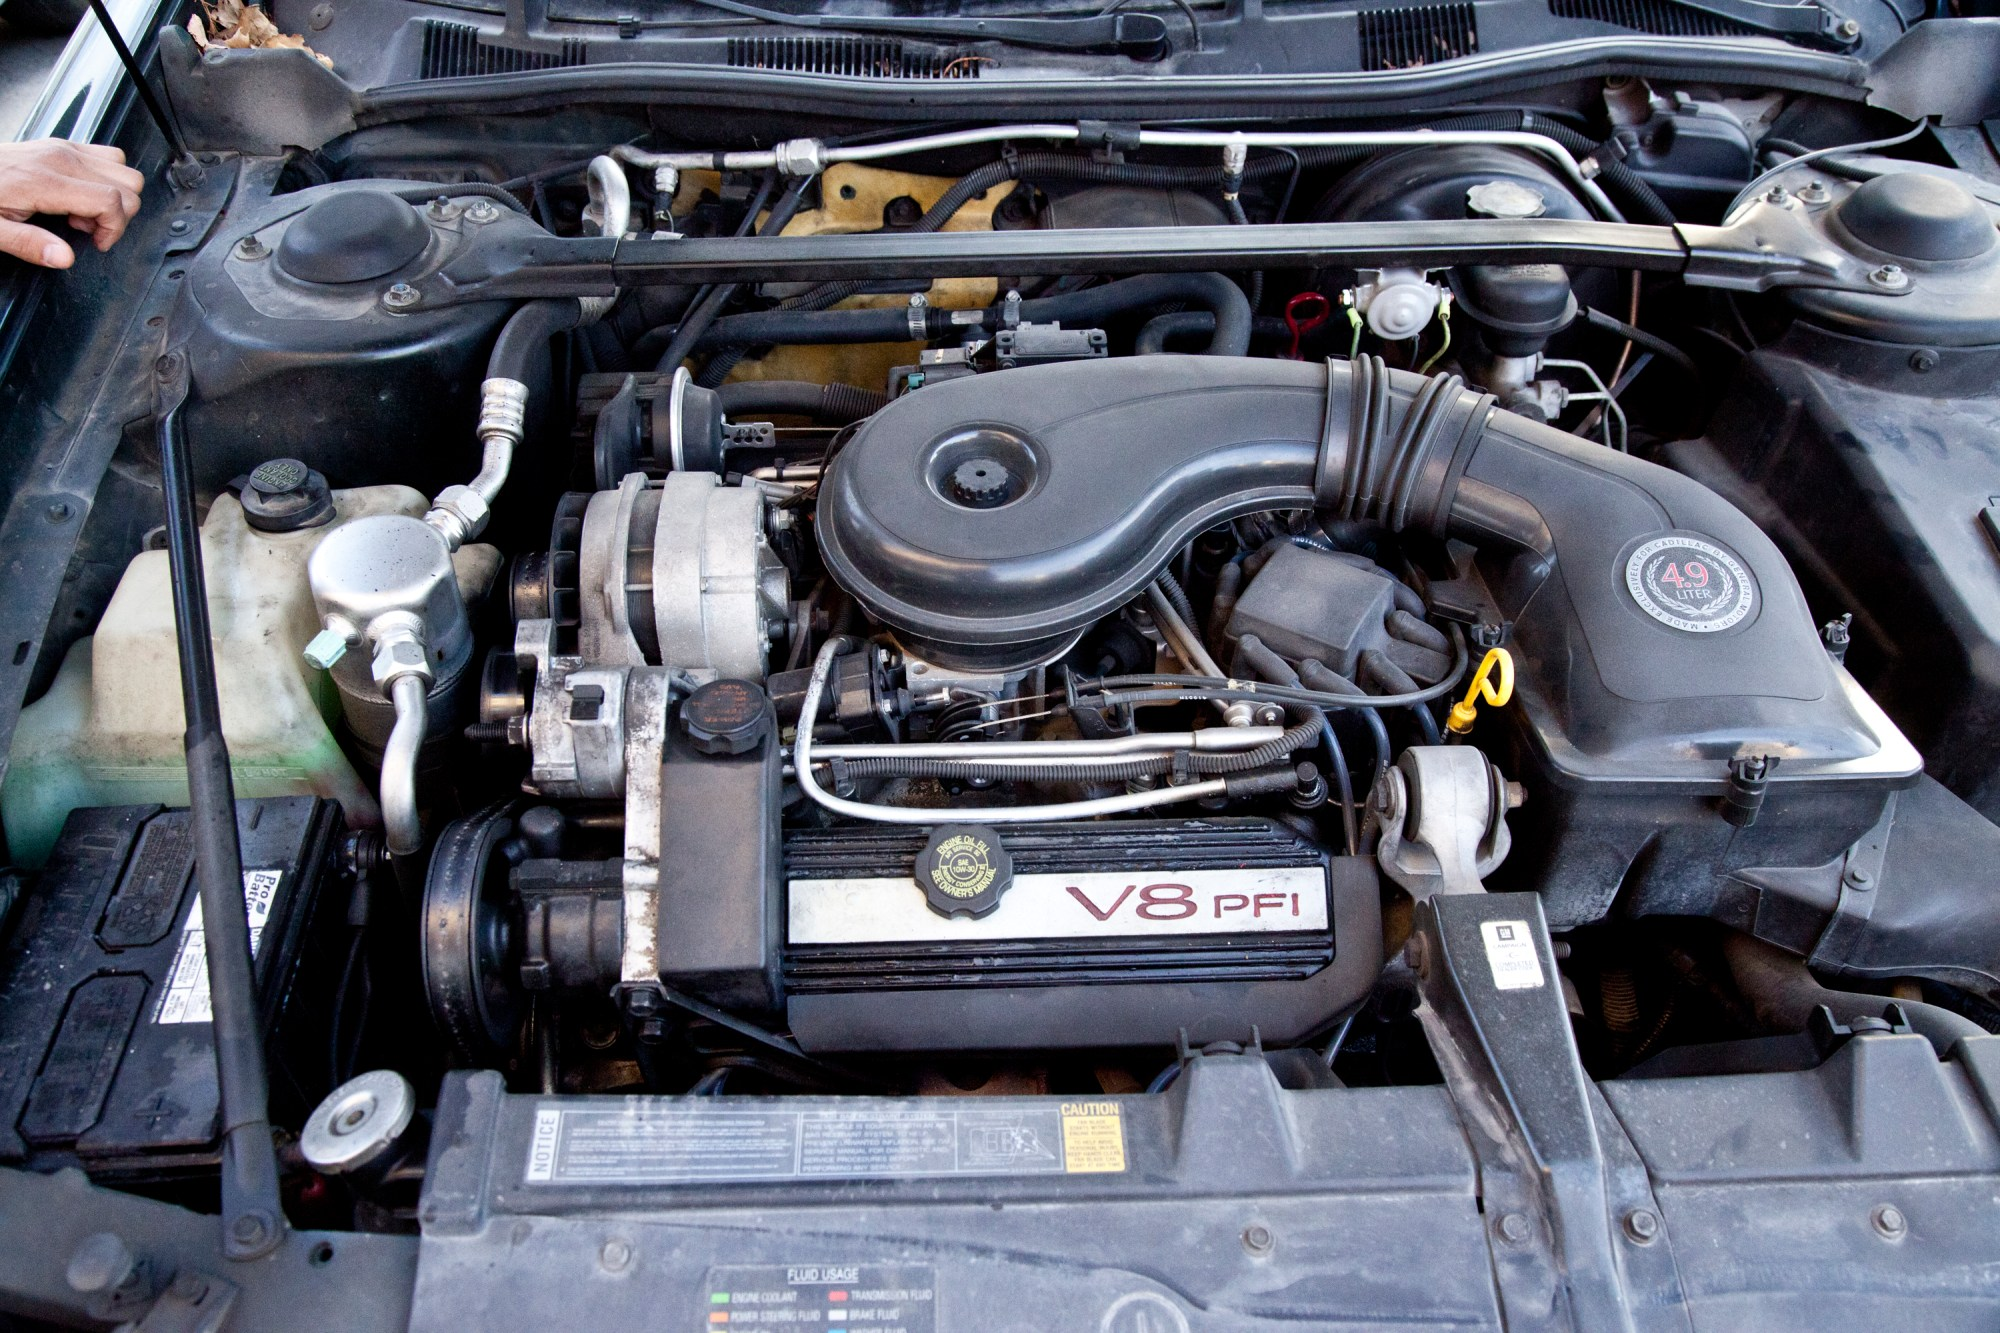 hight resolution of open the hood and disconnect the negative battery cable clamp from the negative battery terminal using a socket wrench turn the nut on the cable clamp